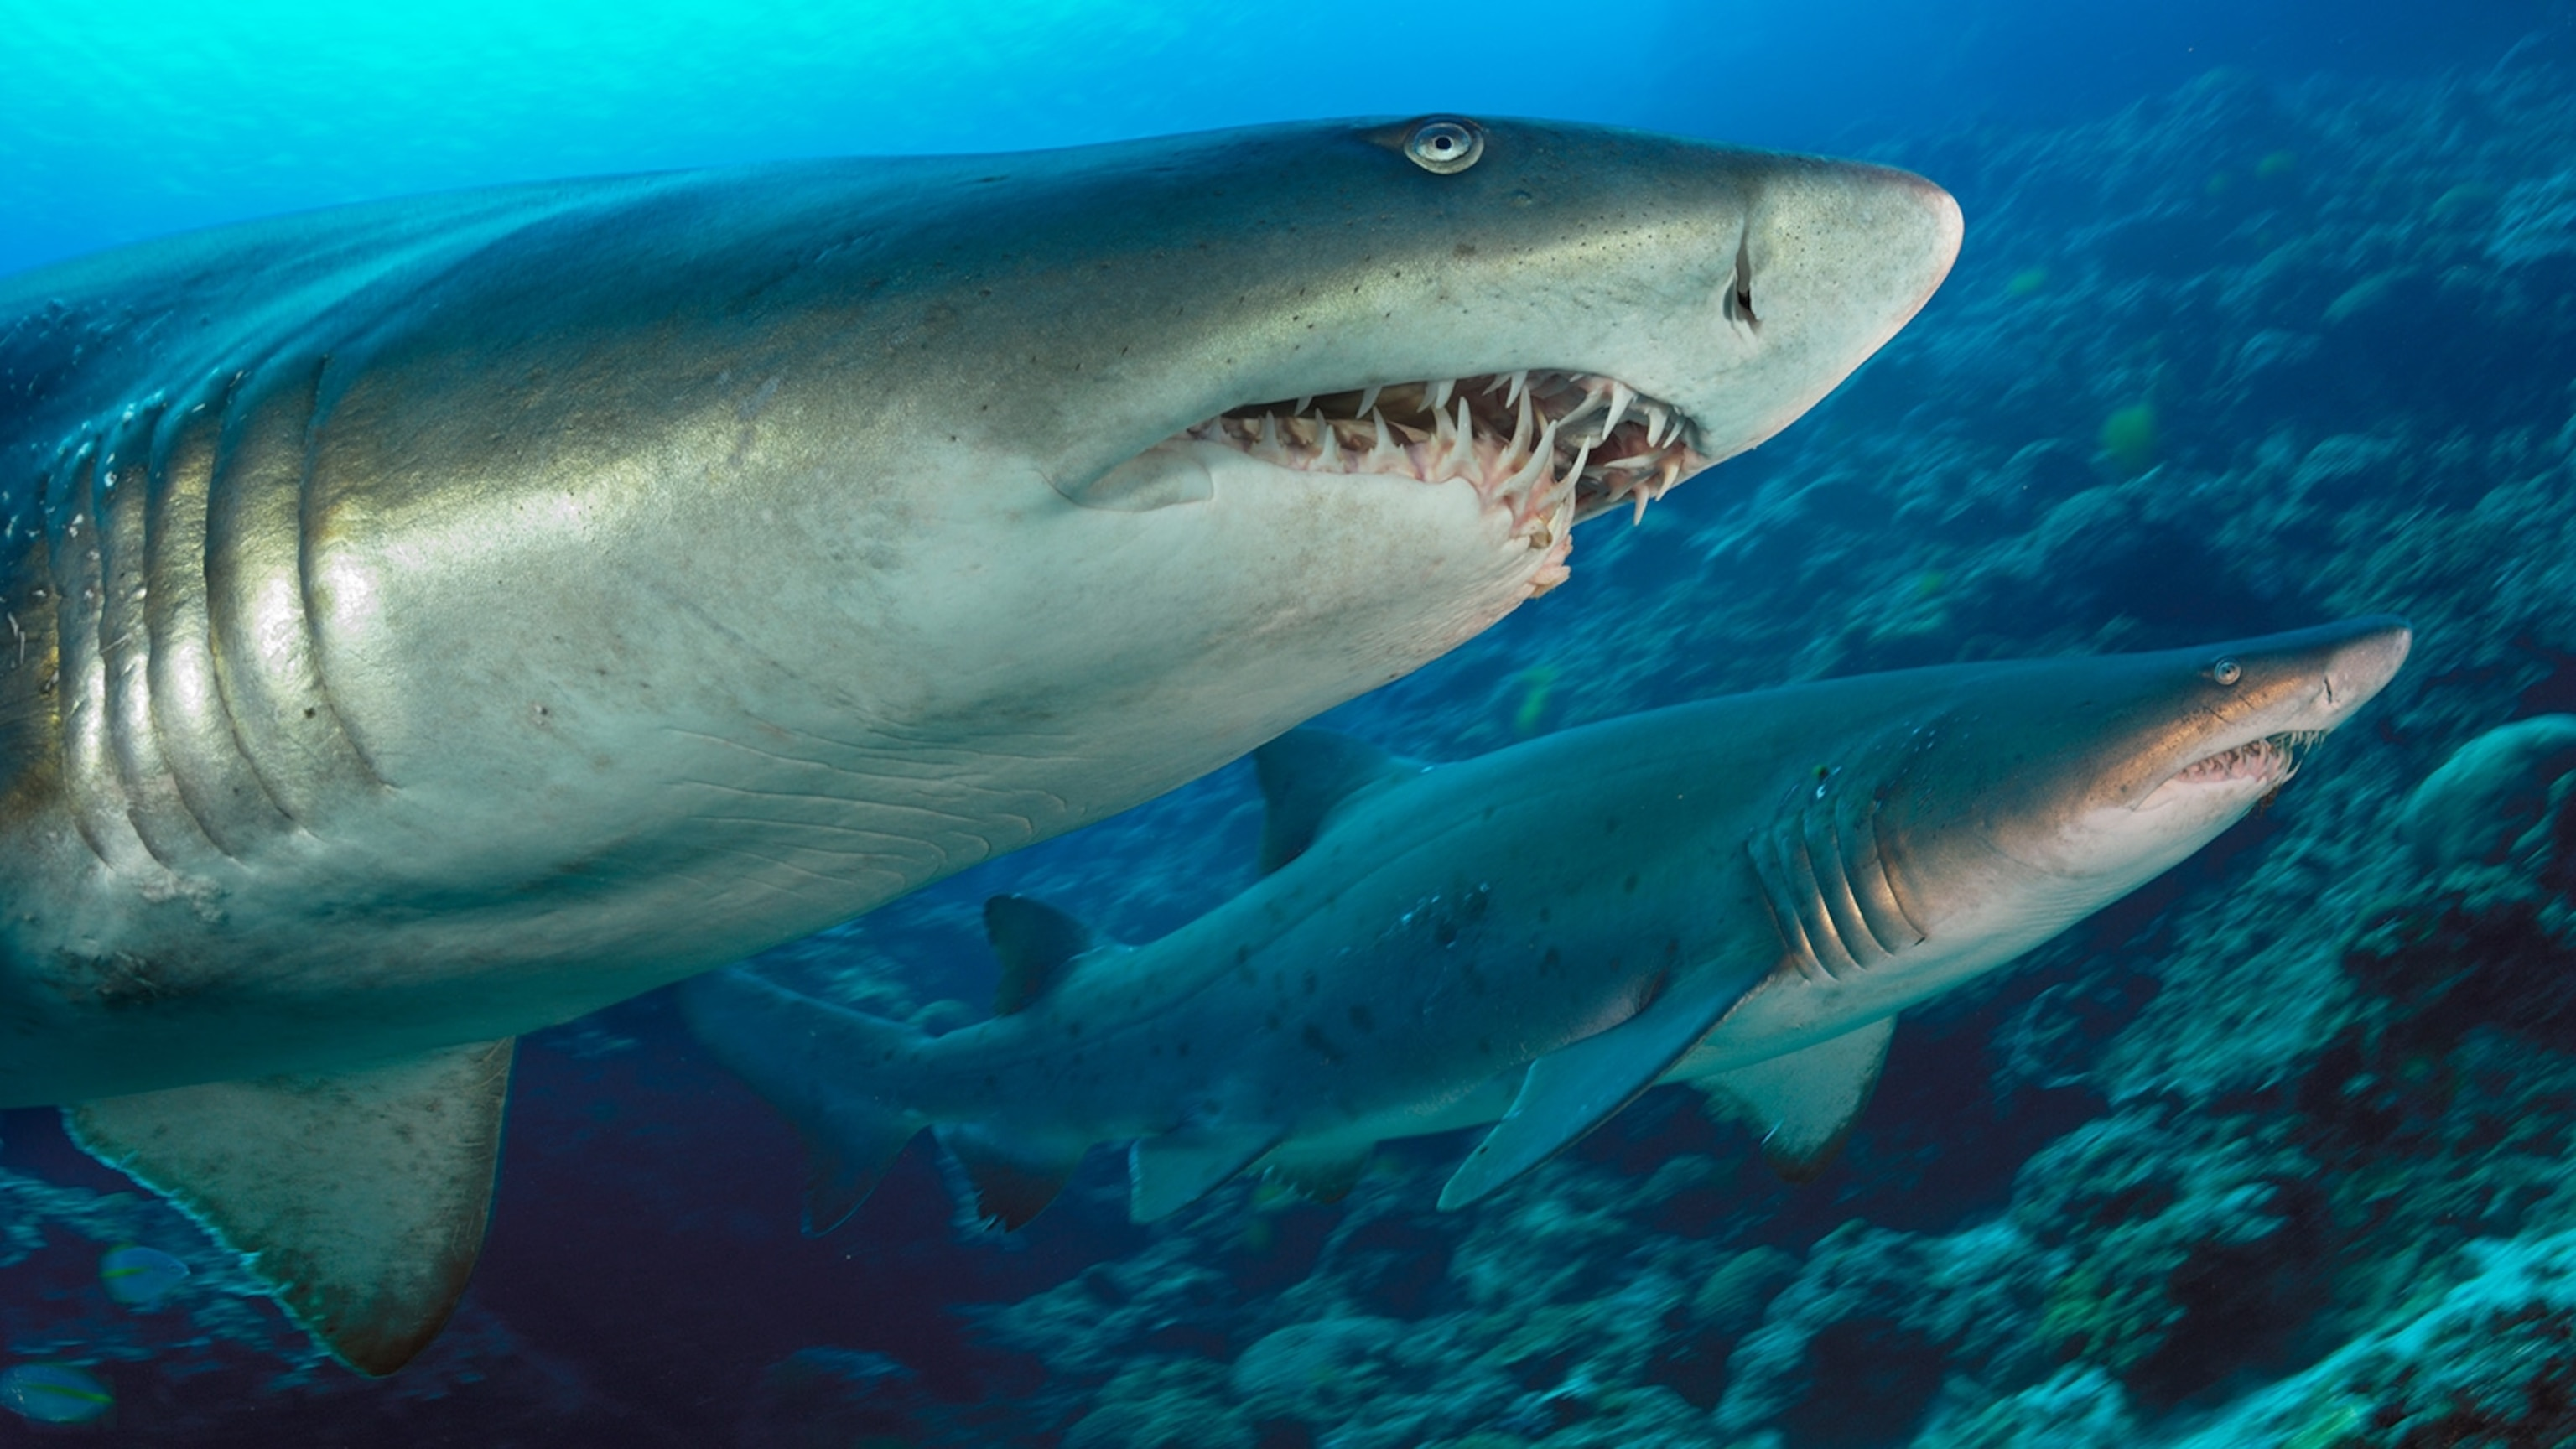 Ancient Shark's Lost Teeth From Millions Of Years Ago In Antarctica Recorded Earth's Climate History